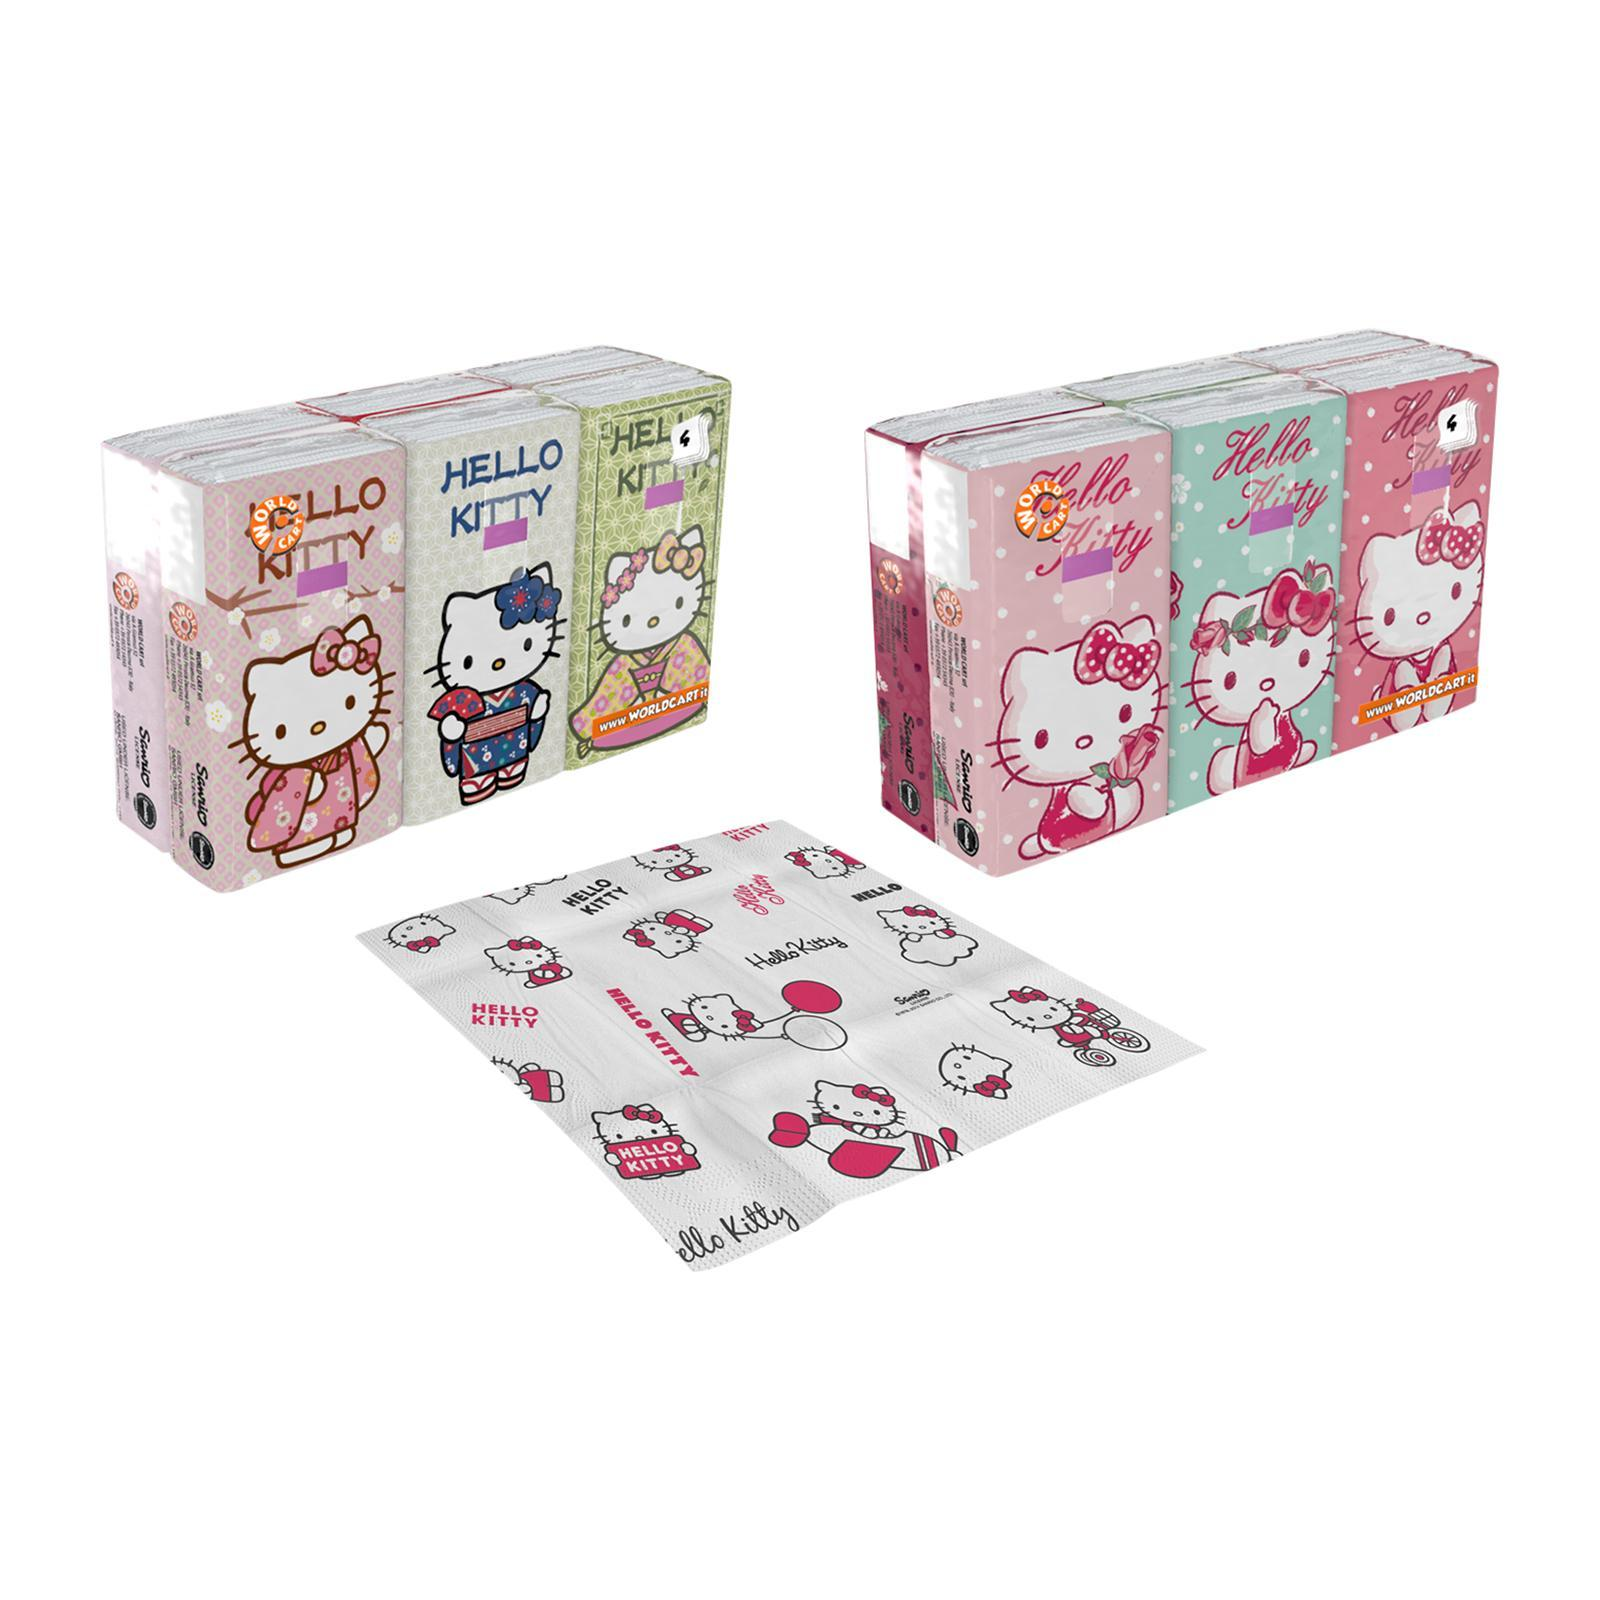 Sanrio Hello Kitty Printed Soft Tissue